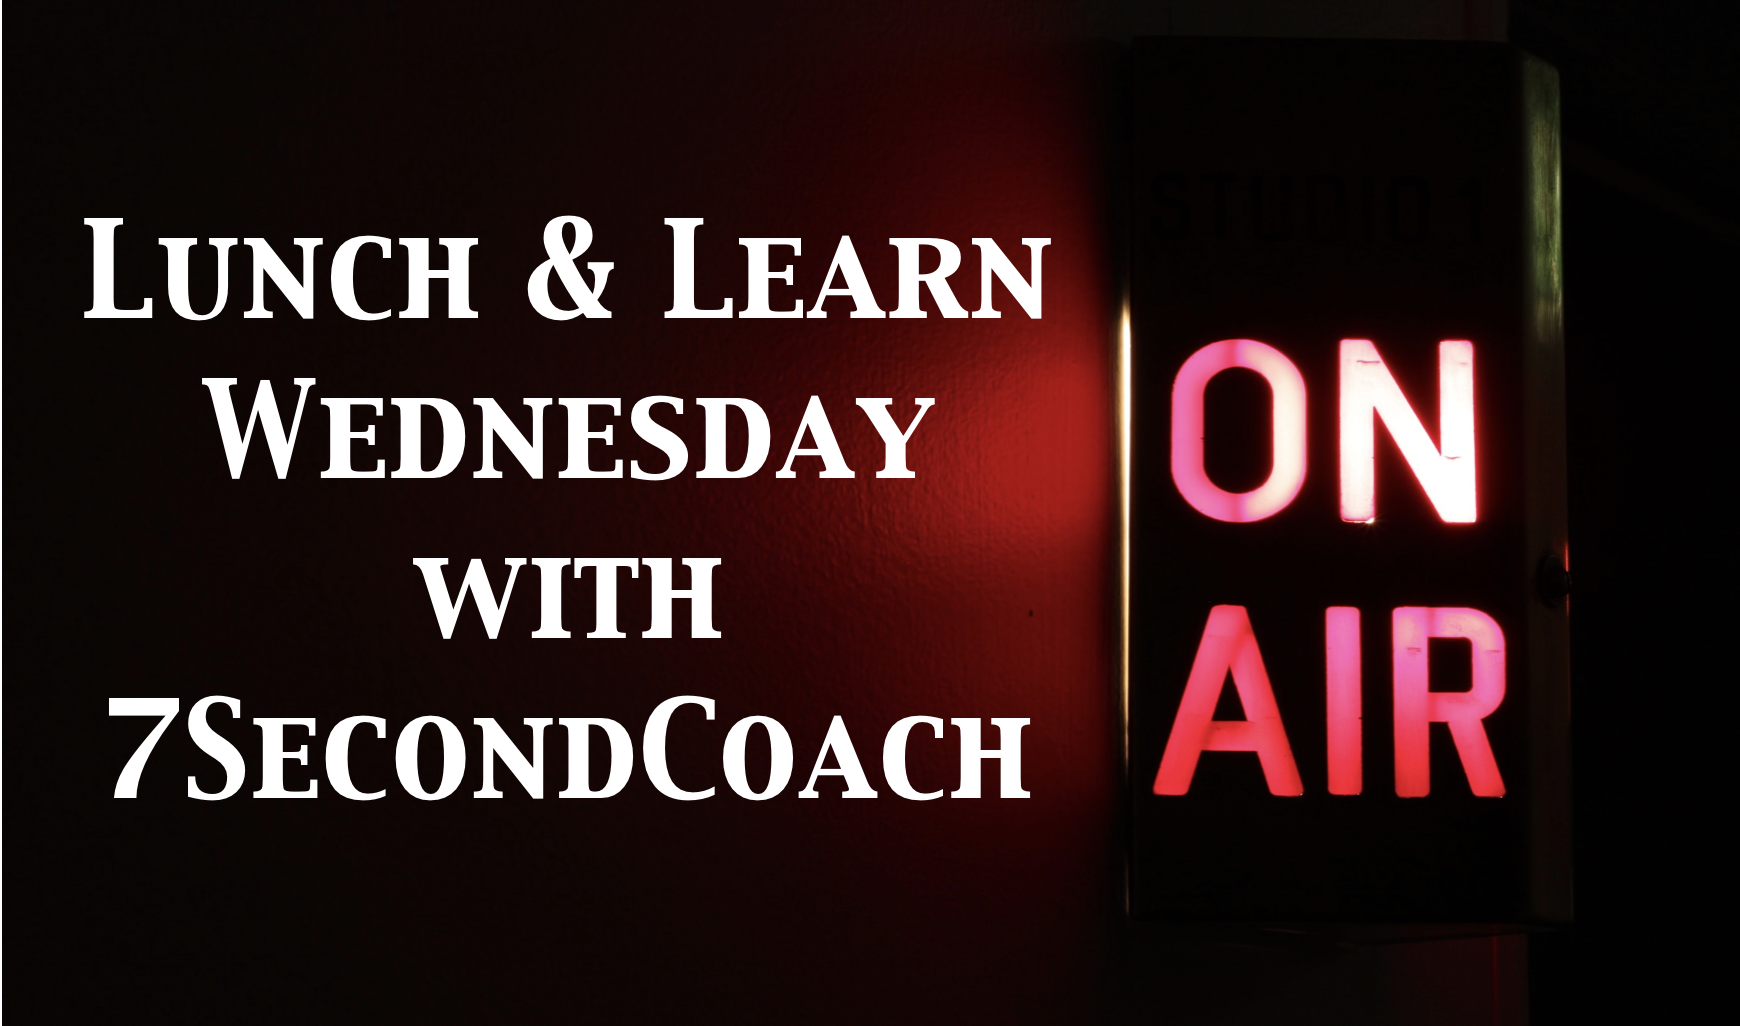 Lunch & Learn: The Only Goal